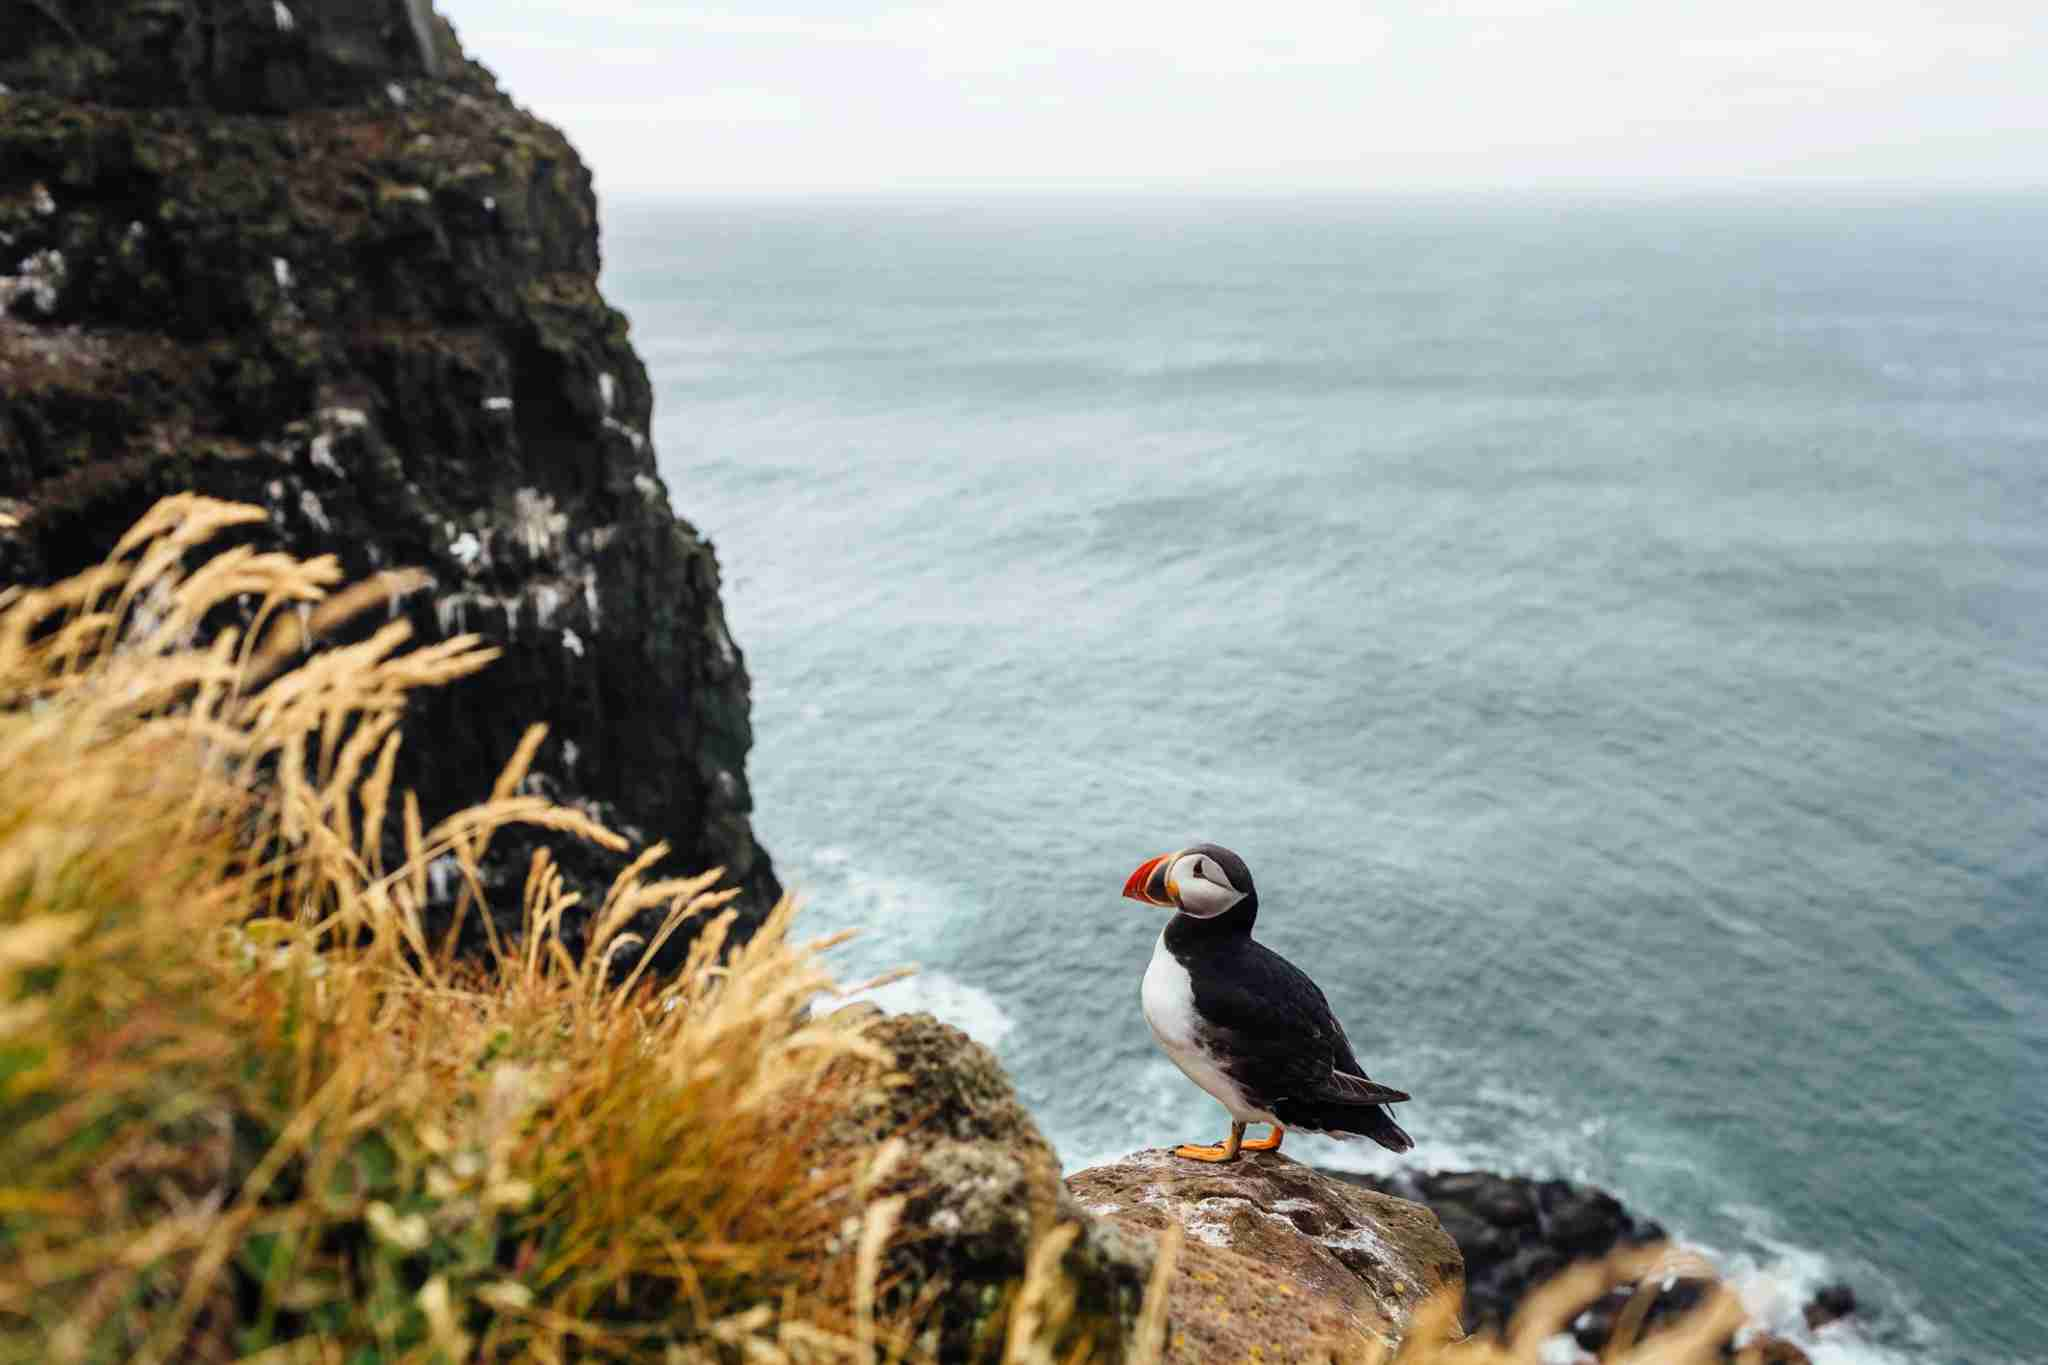 Photo of puffins at Látrabjarg by Alex Walker / Getty Images.